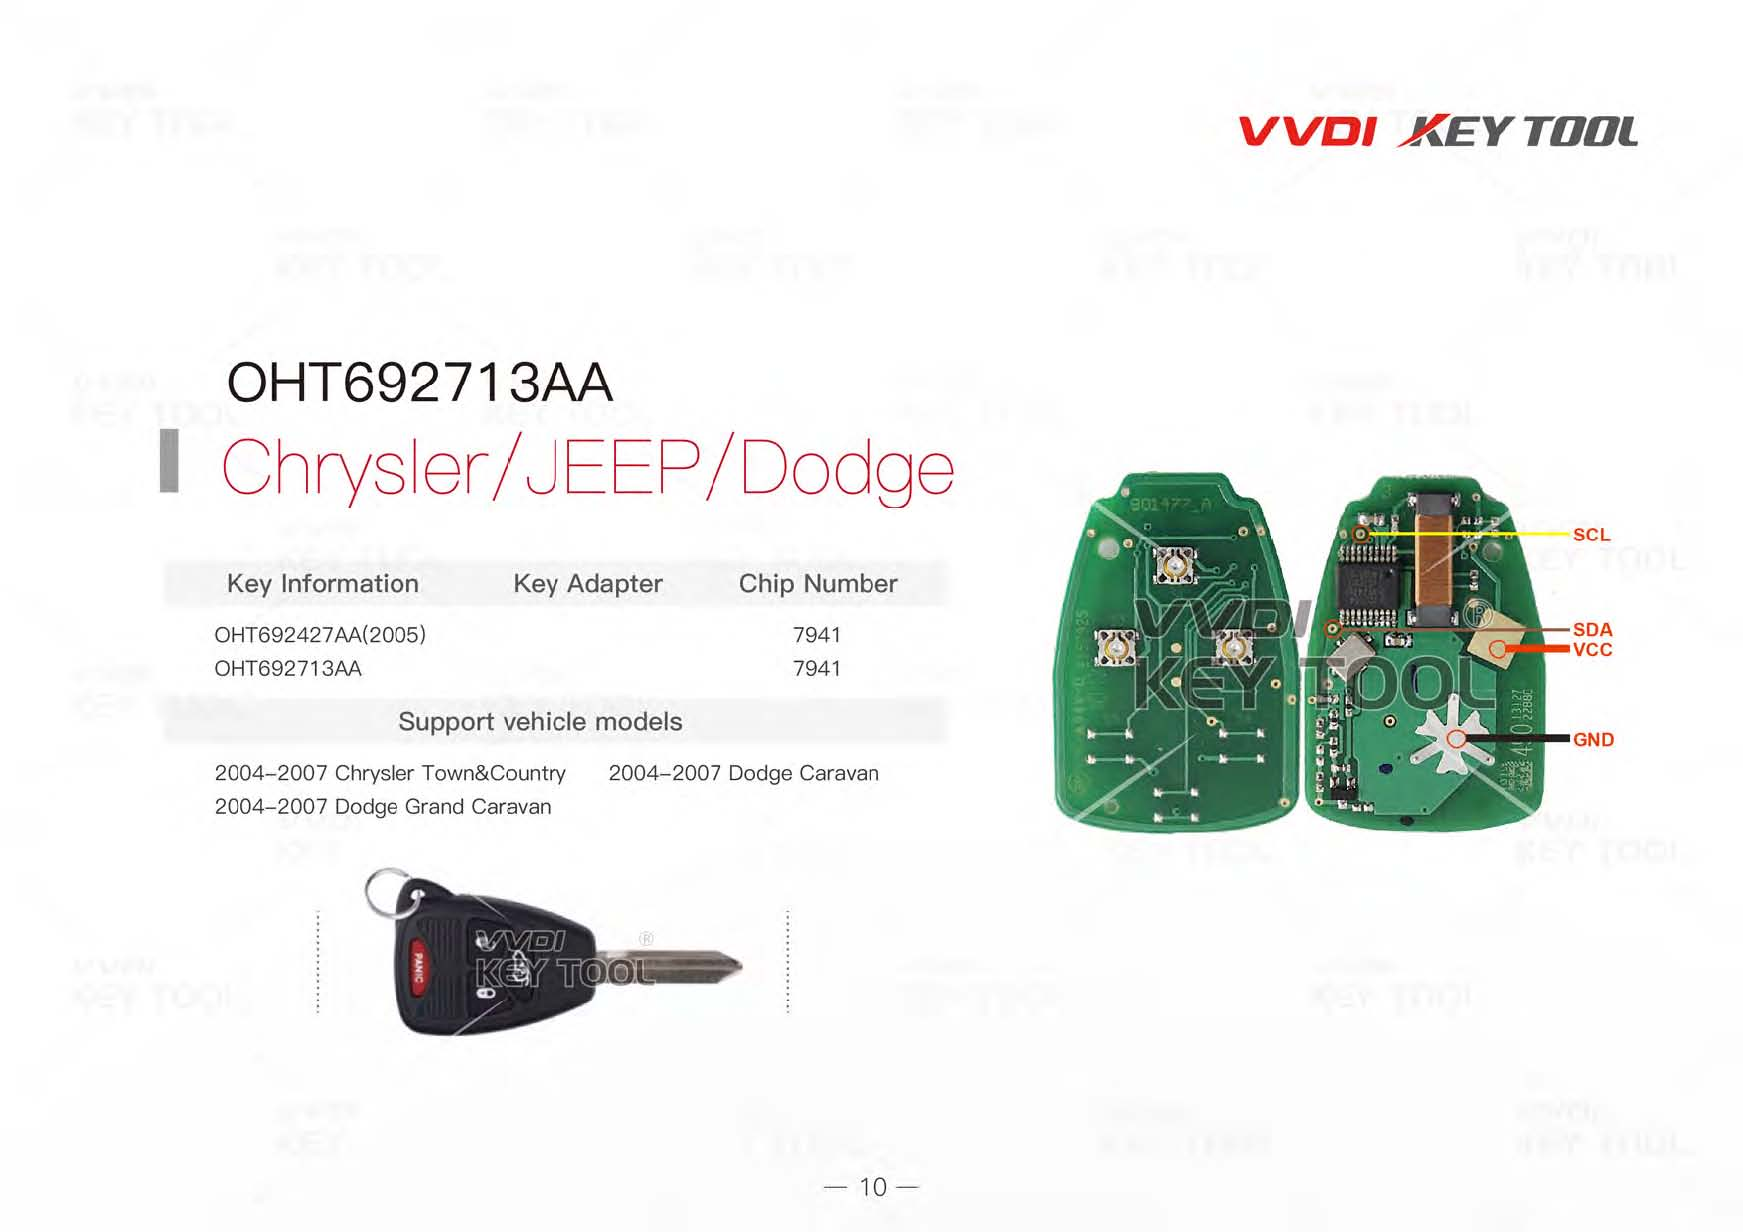 vvdi-key-tool-renew-diagram-10s